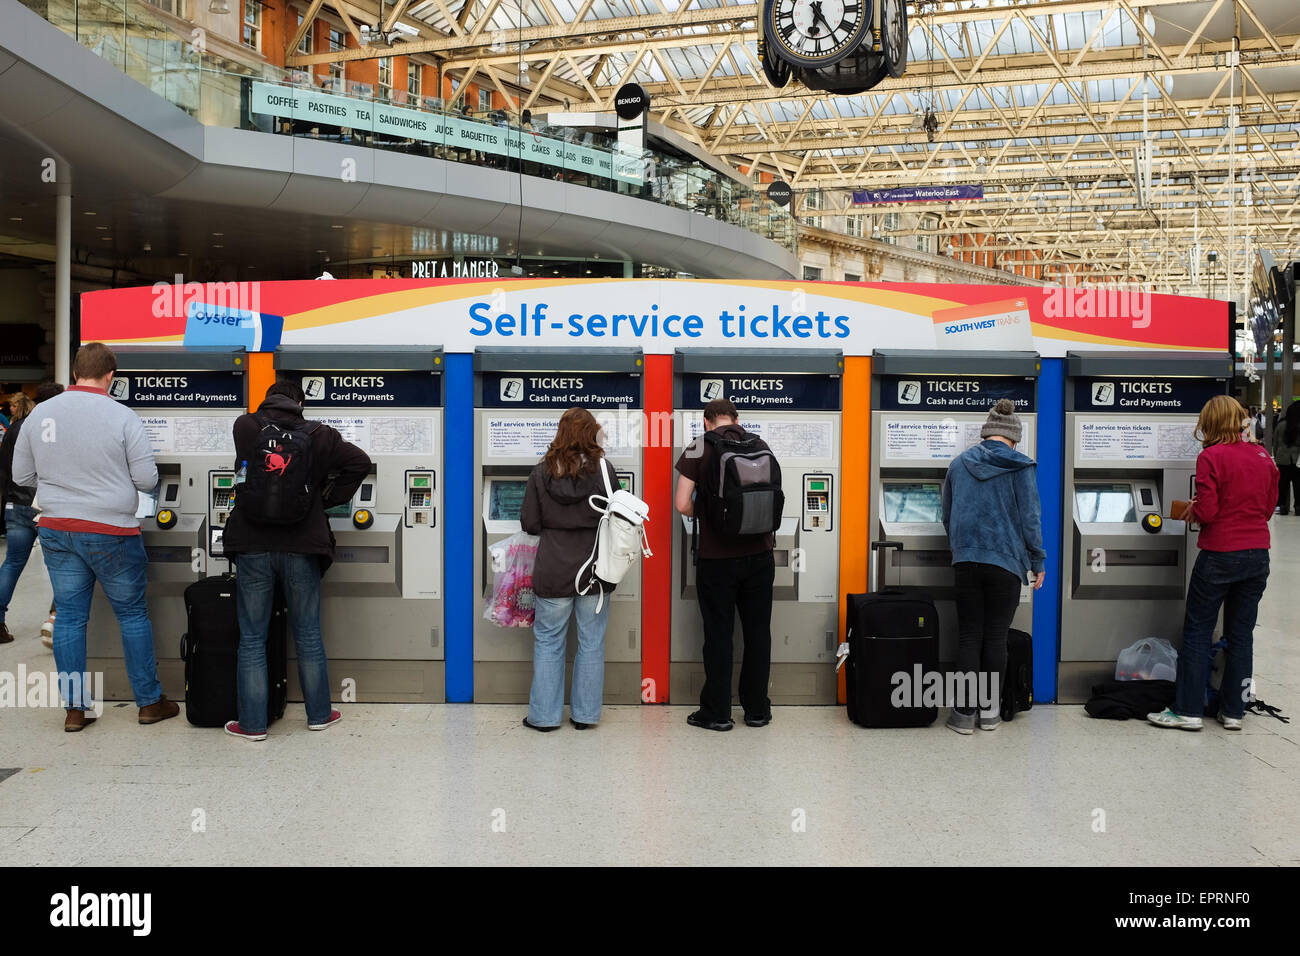 Machines selling train tickets at Waterloo station in London, England. - Stock Image